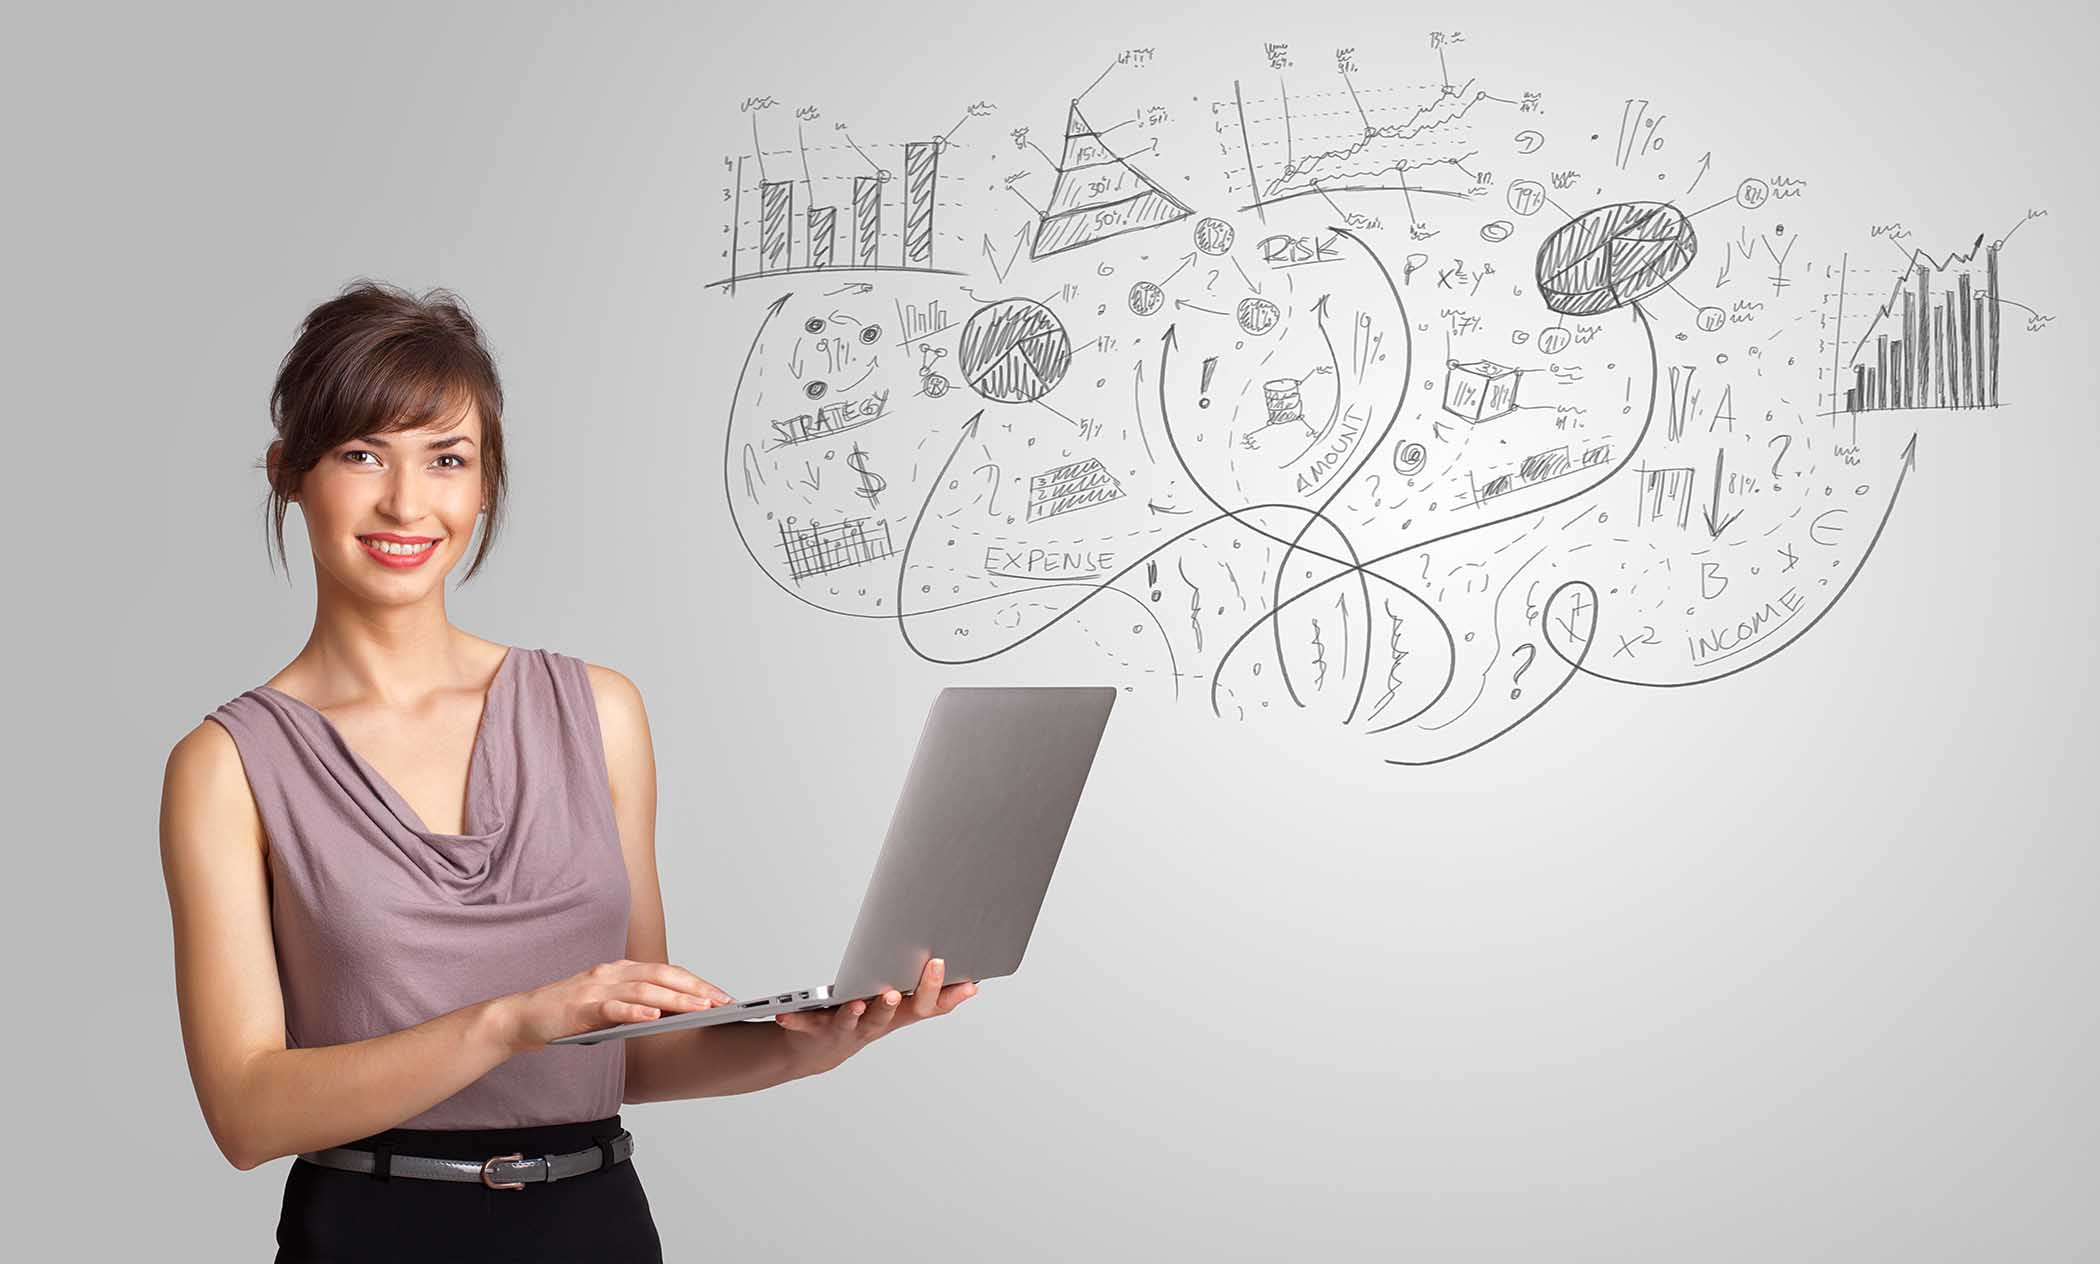 Paid Online Advertising – What You Need To Know About Online Advertising